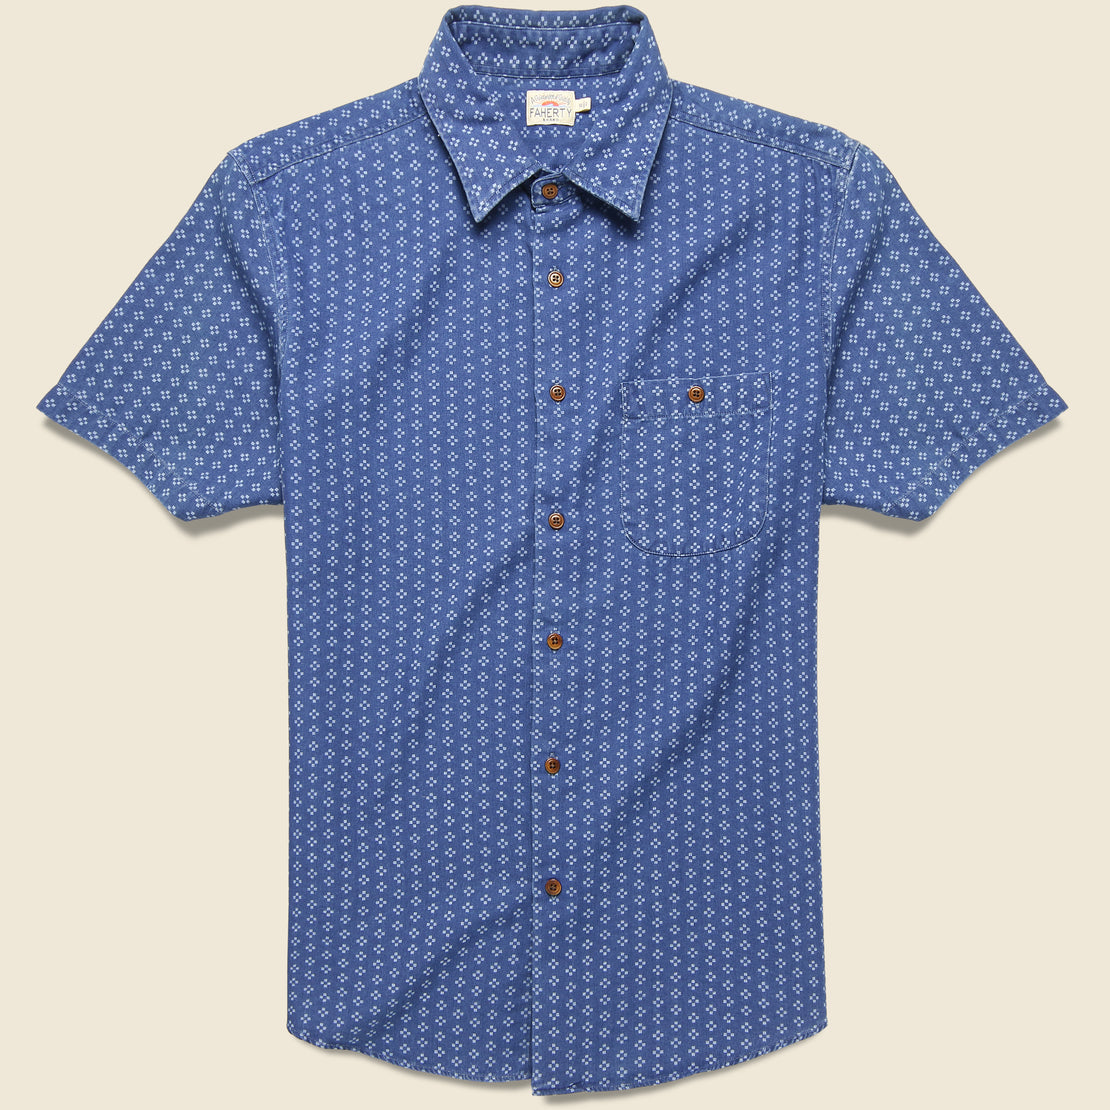 Faherty Playa Shirt - Eco Indigo Geo